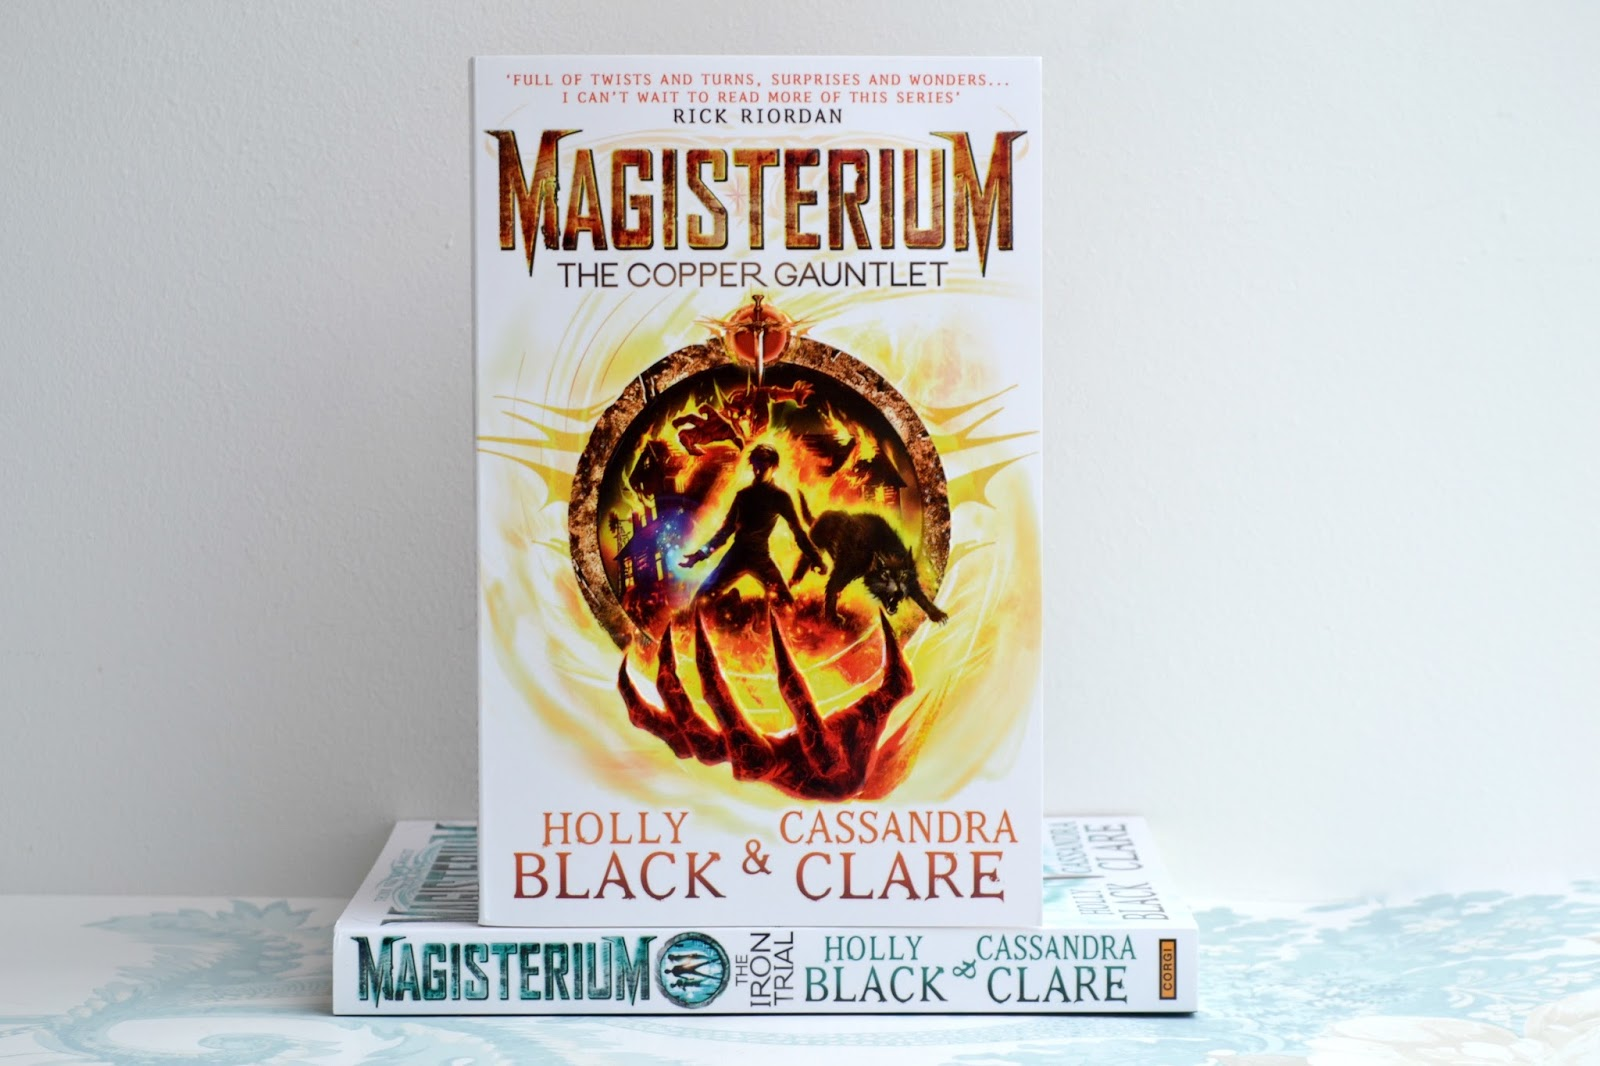 Magisterium: The Copper Gauntlet by Holly Black and Cassandra Clare. The second book in the Magisterium series.